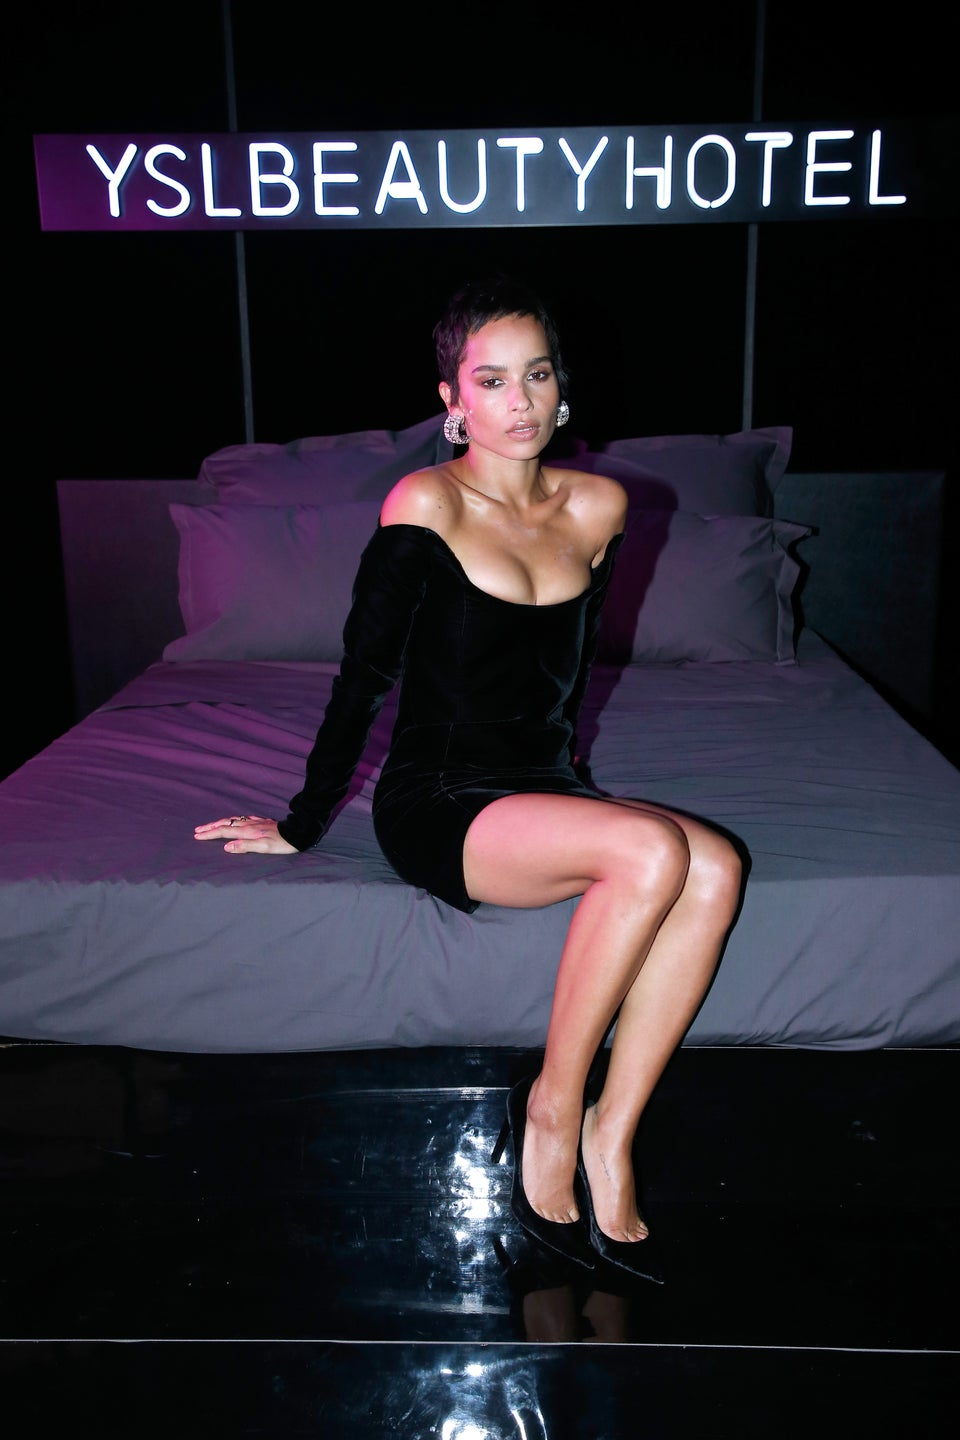 ESSENCE 25 Most Stylish: Zoe Kravitz Is A Hollywood Starlet Defining Black Beauty On Her Own Terms